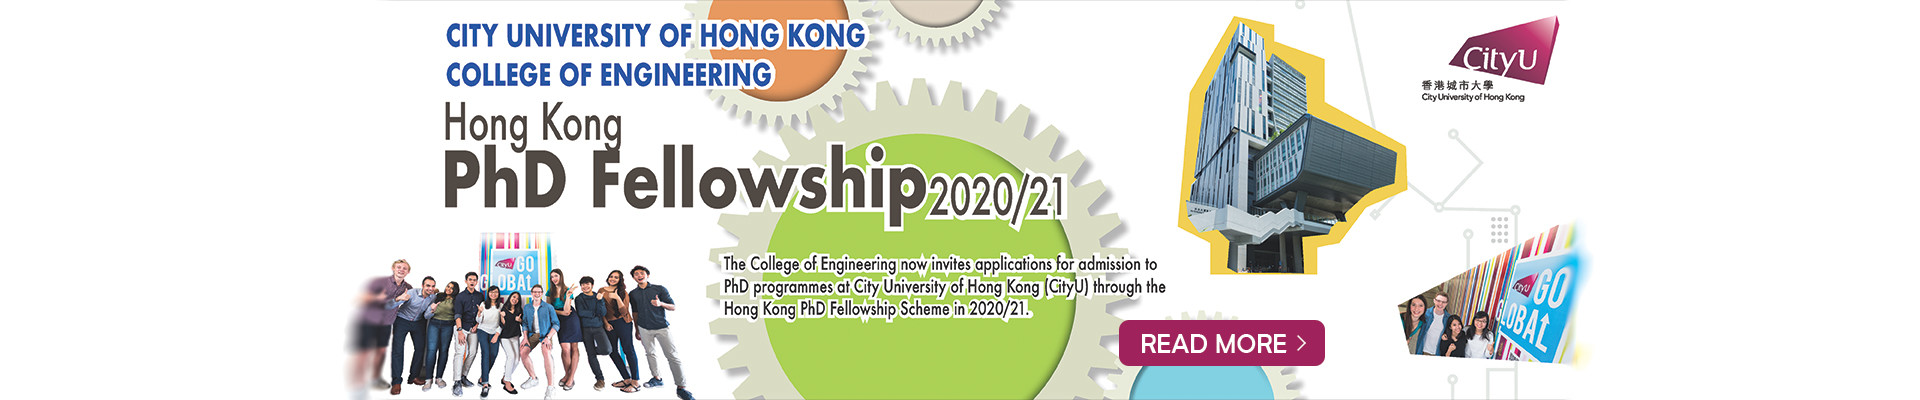 PhD Fellowship 2020-2021